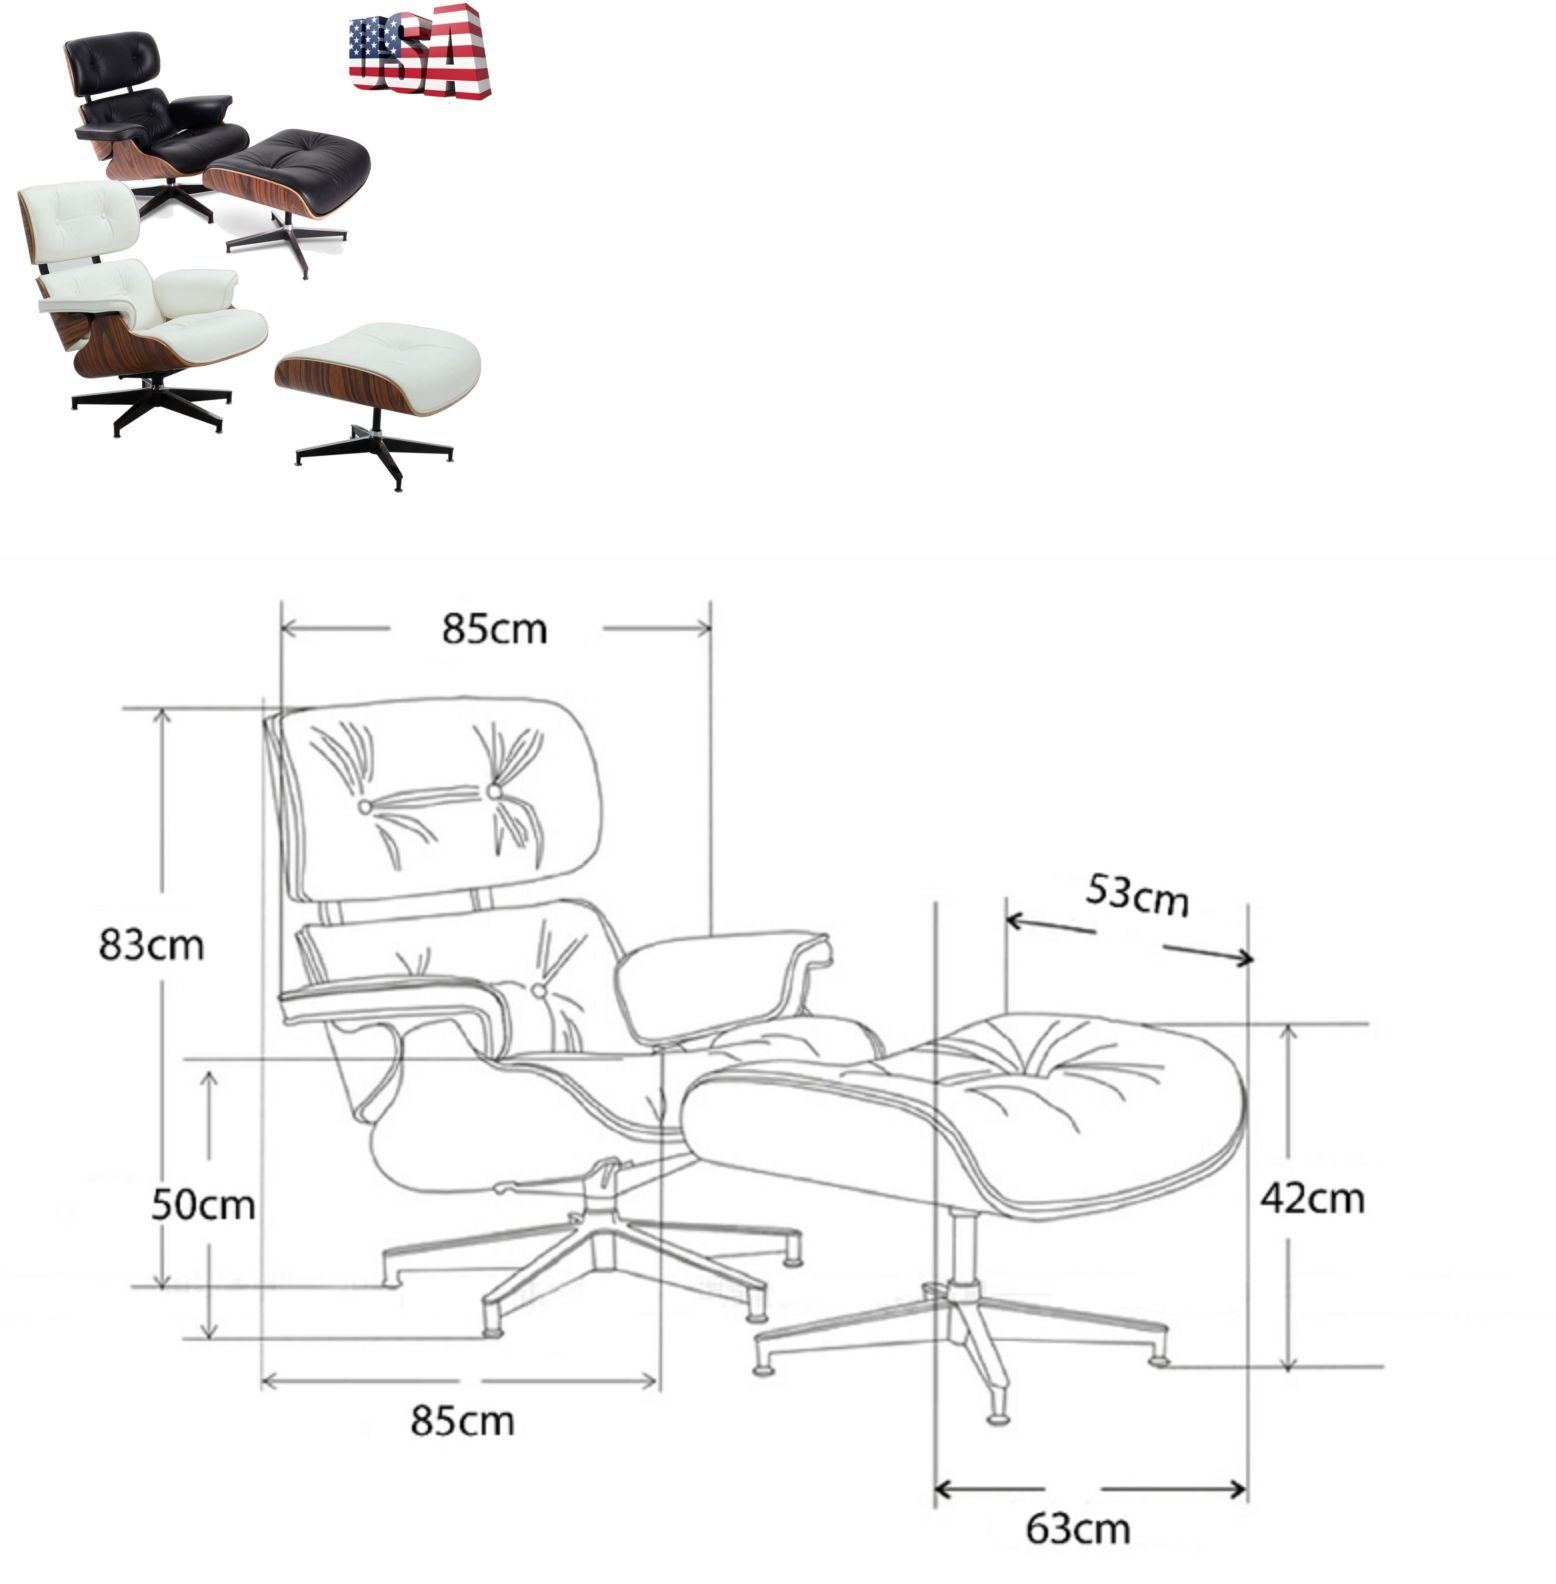 Pleasing Chairs 54235 Mid Century Lounge Eames Chair And Ottoman Top Pdpeps Interior Chair Design Pdpepsorg